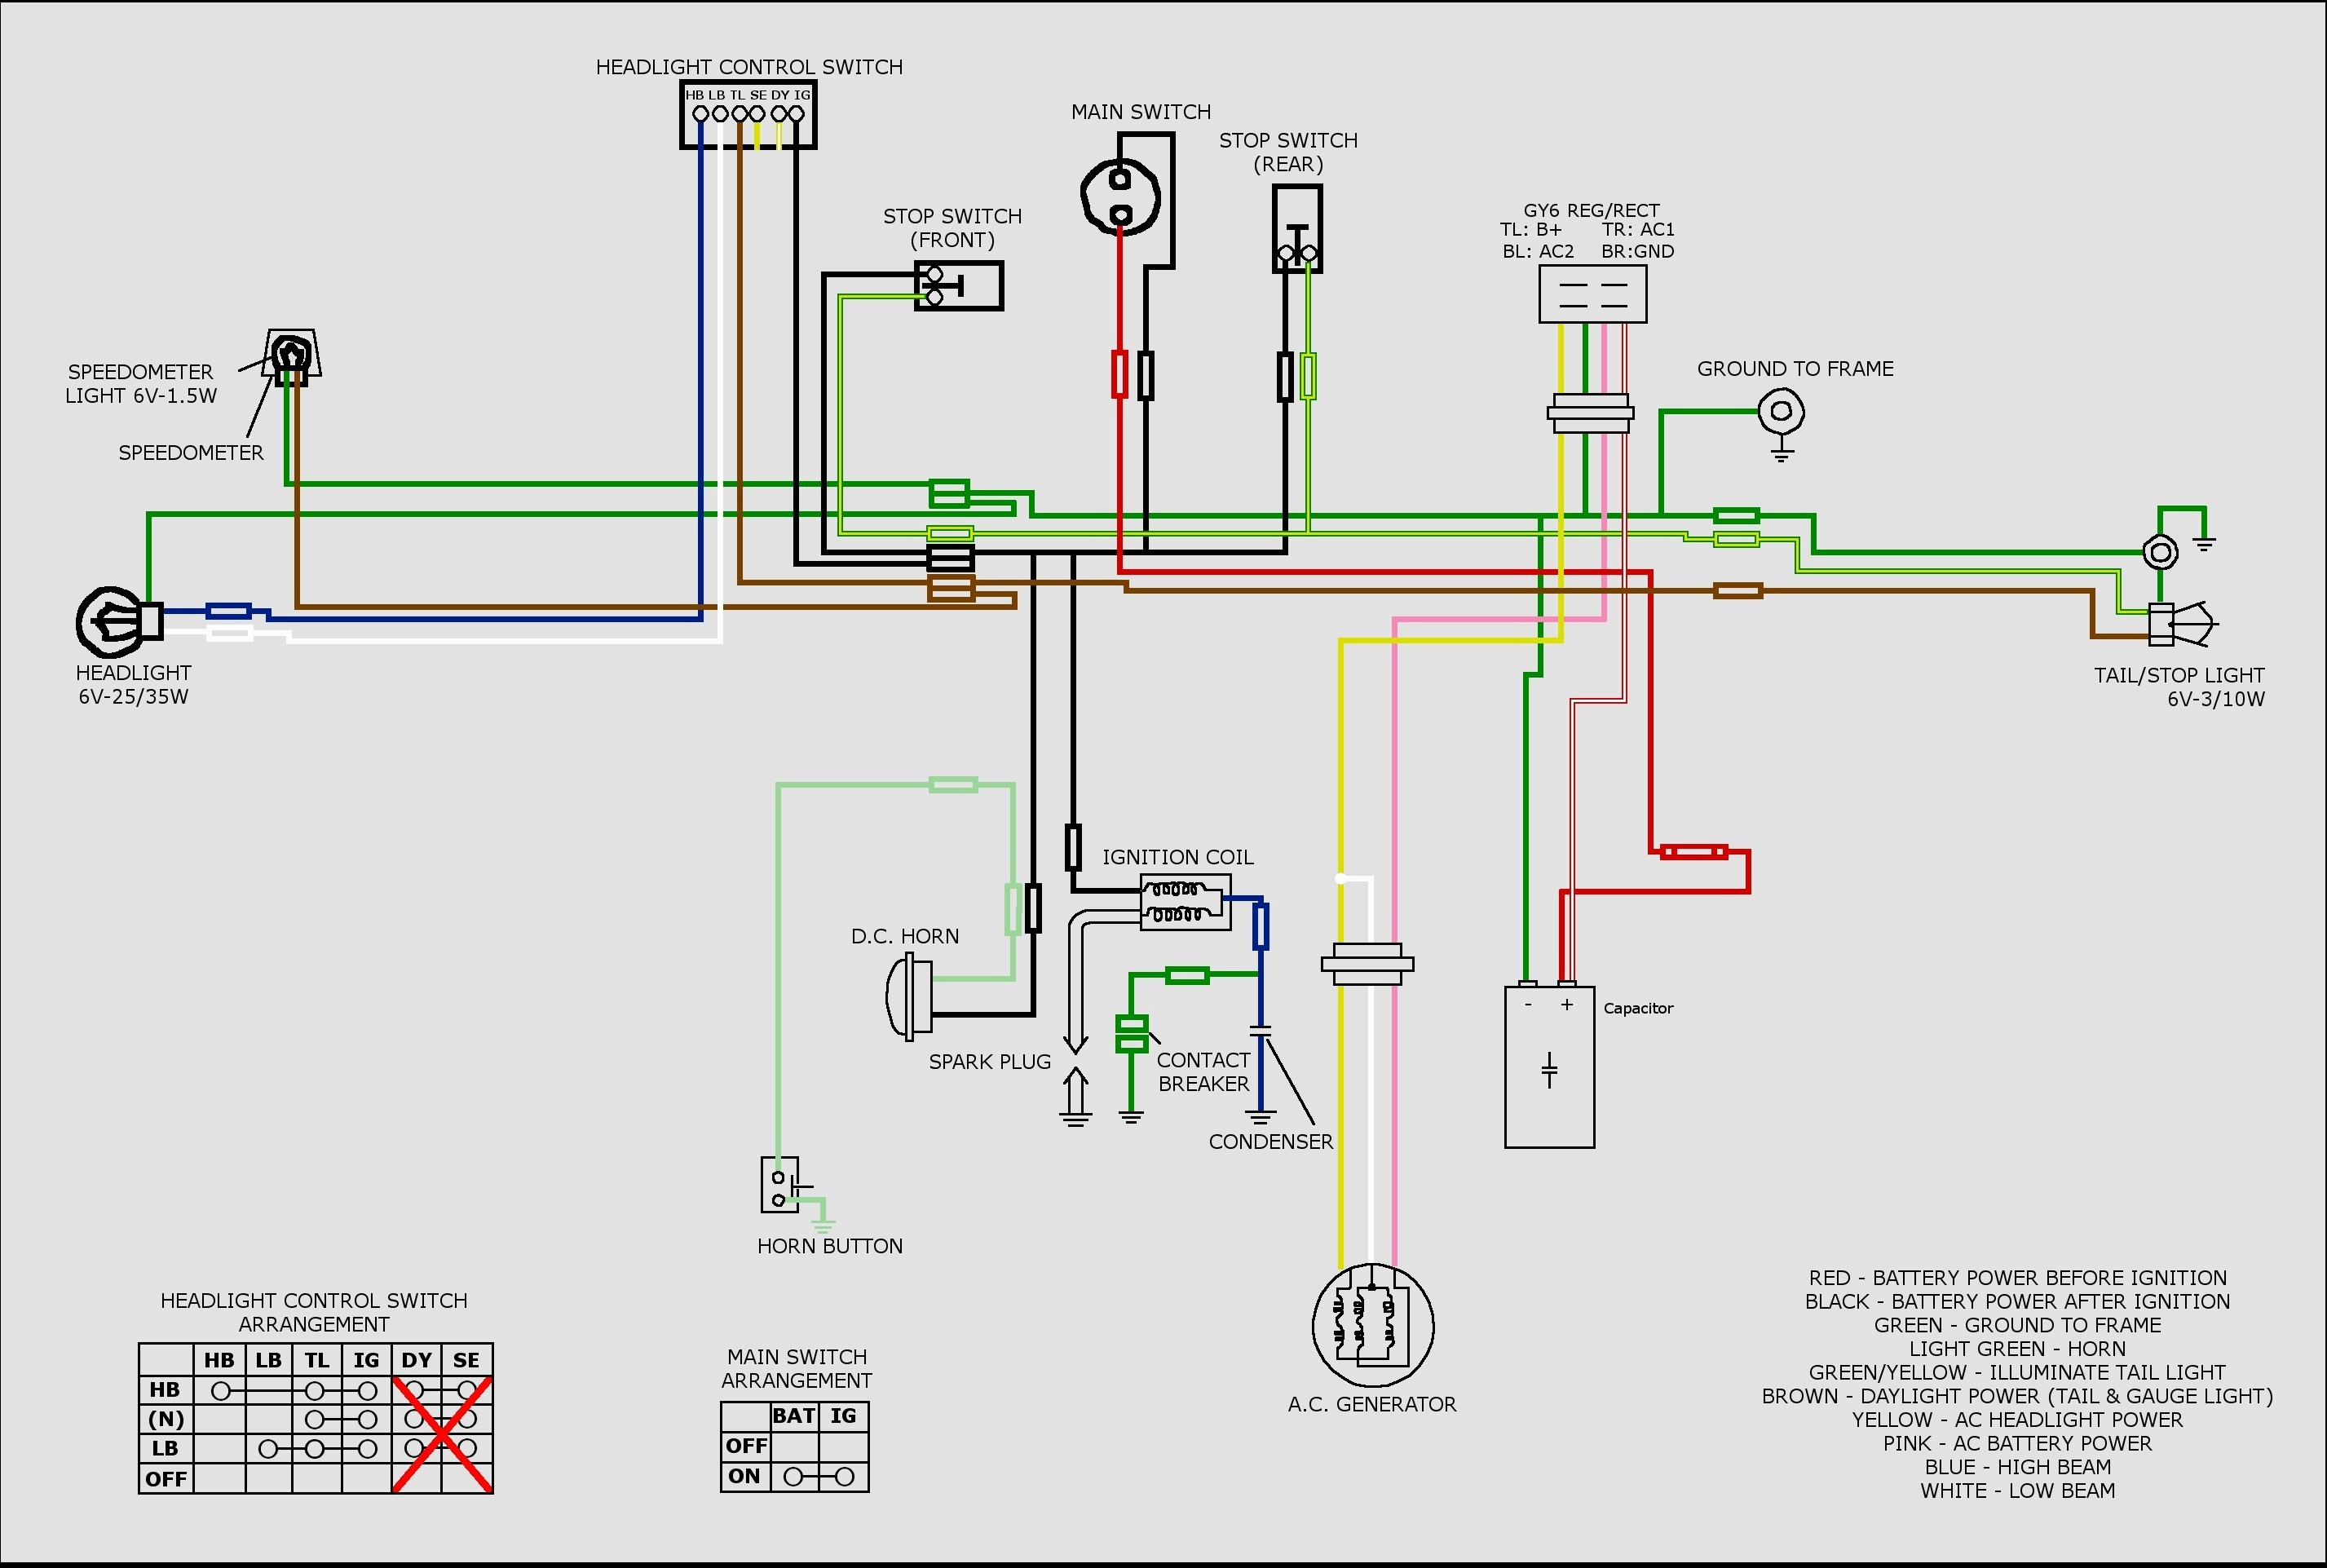 50Cc Wiring Diagram | Wiring Diagram - 50Cc Chinese Scooter Wiring Diagram